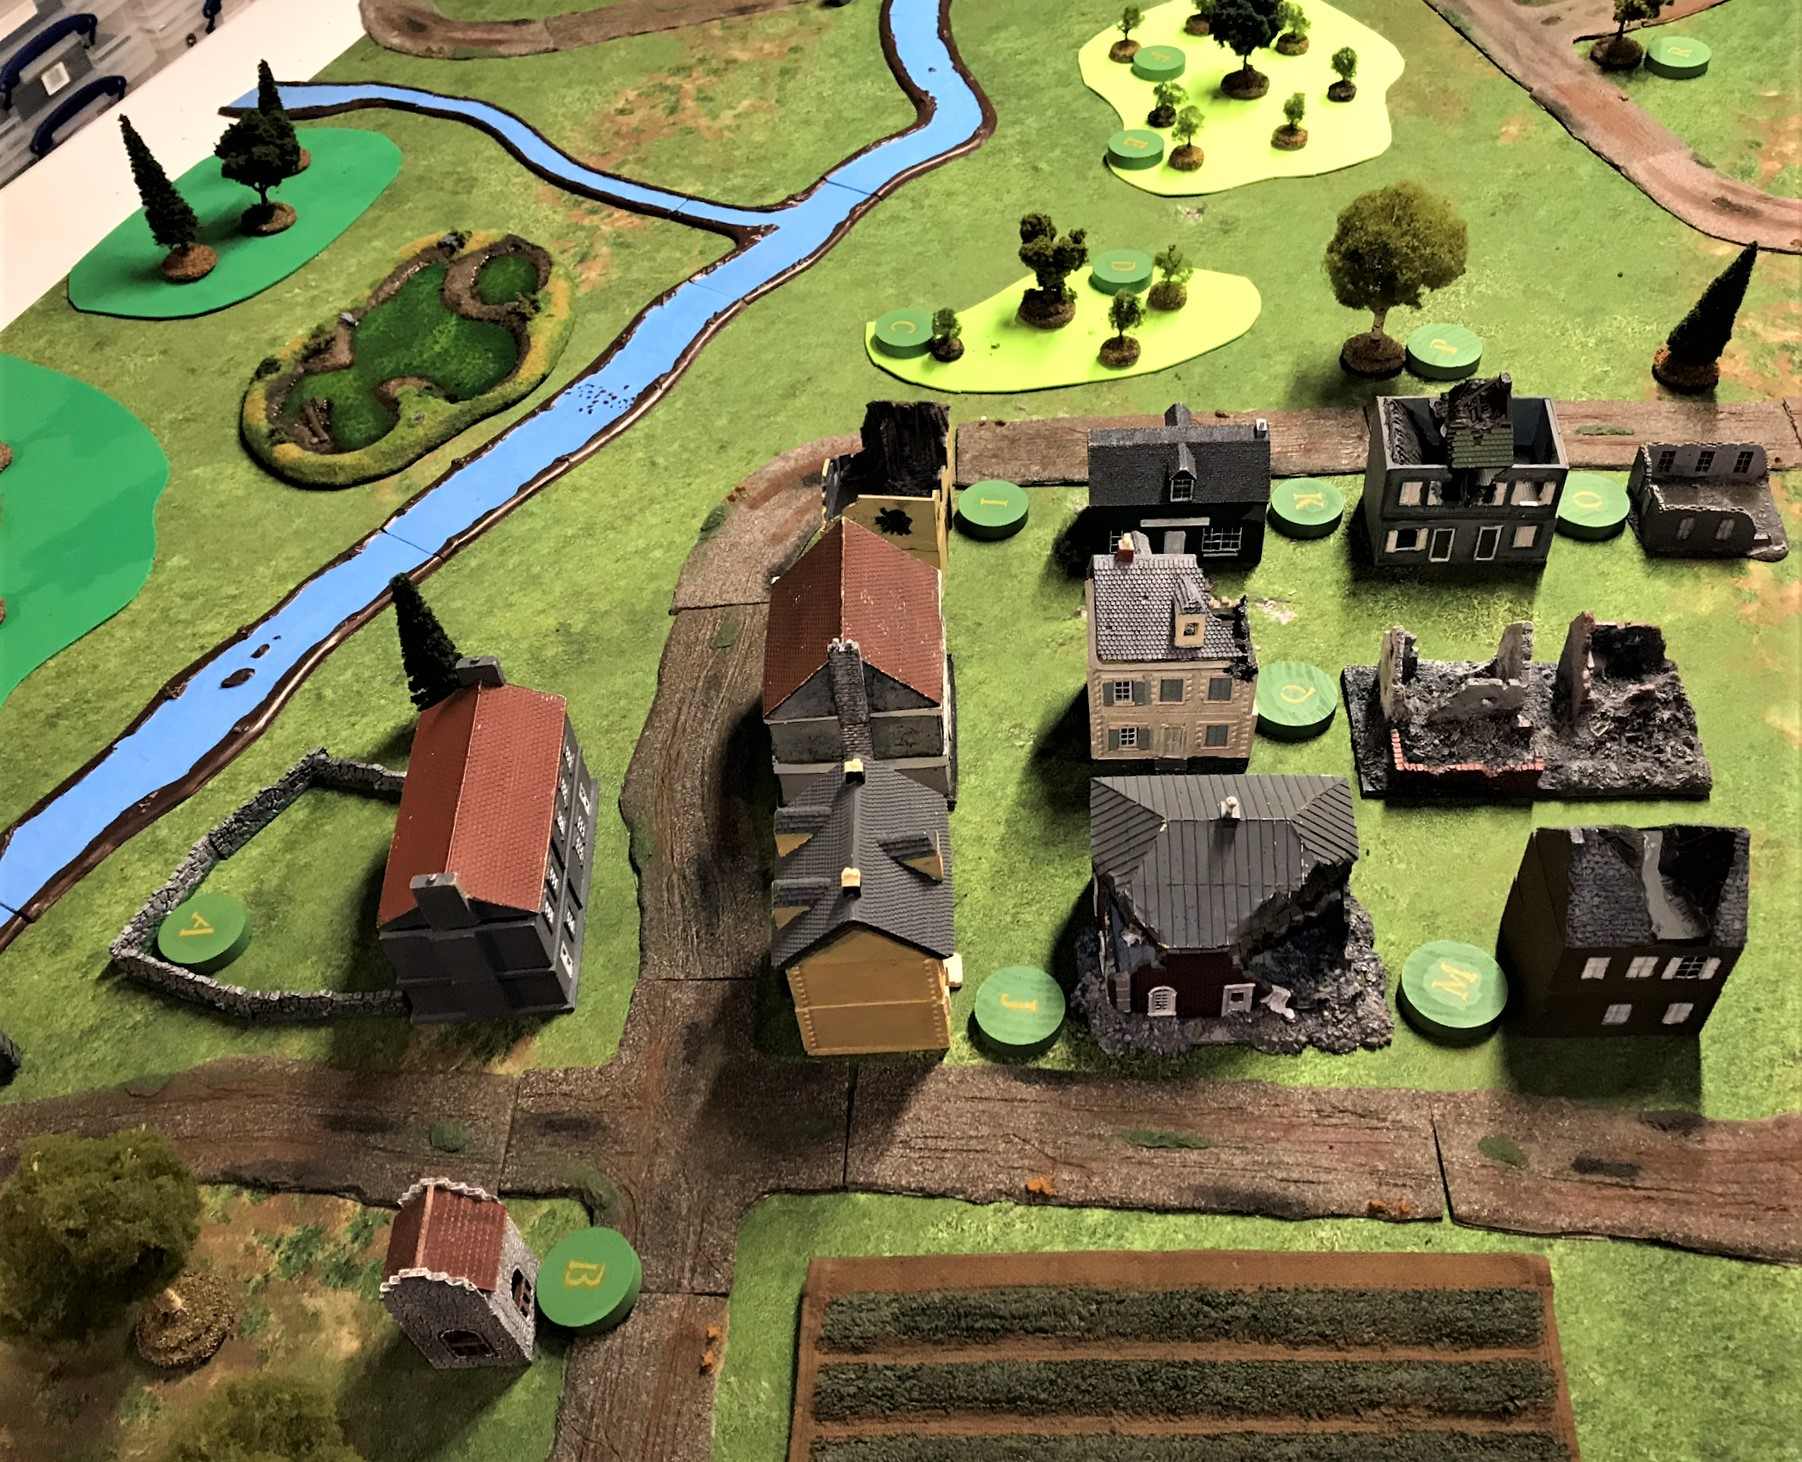 2 Battle of France set up town